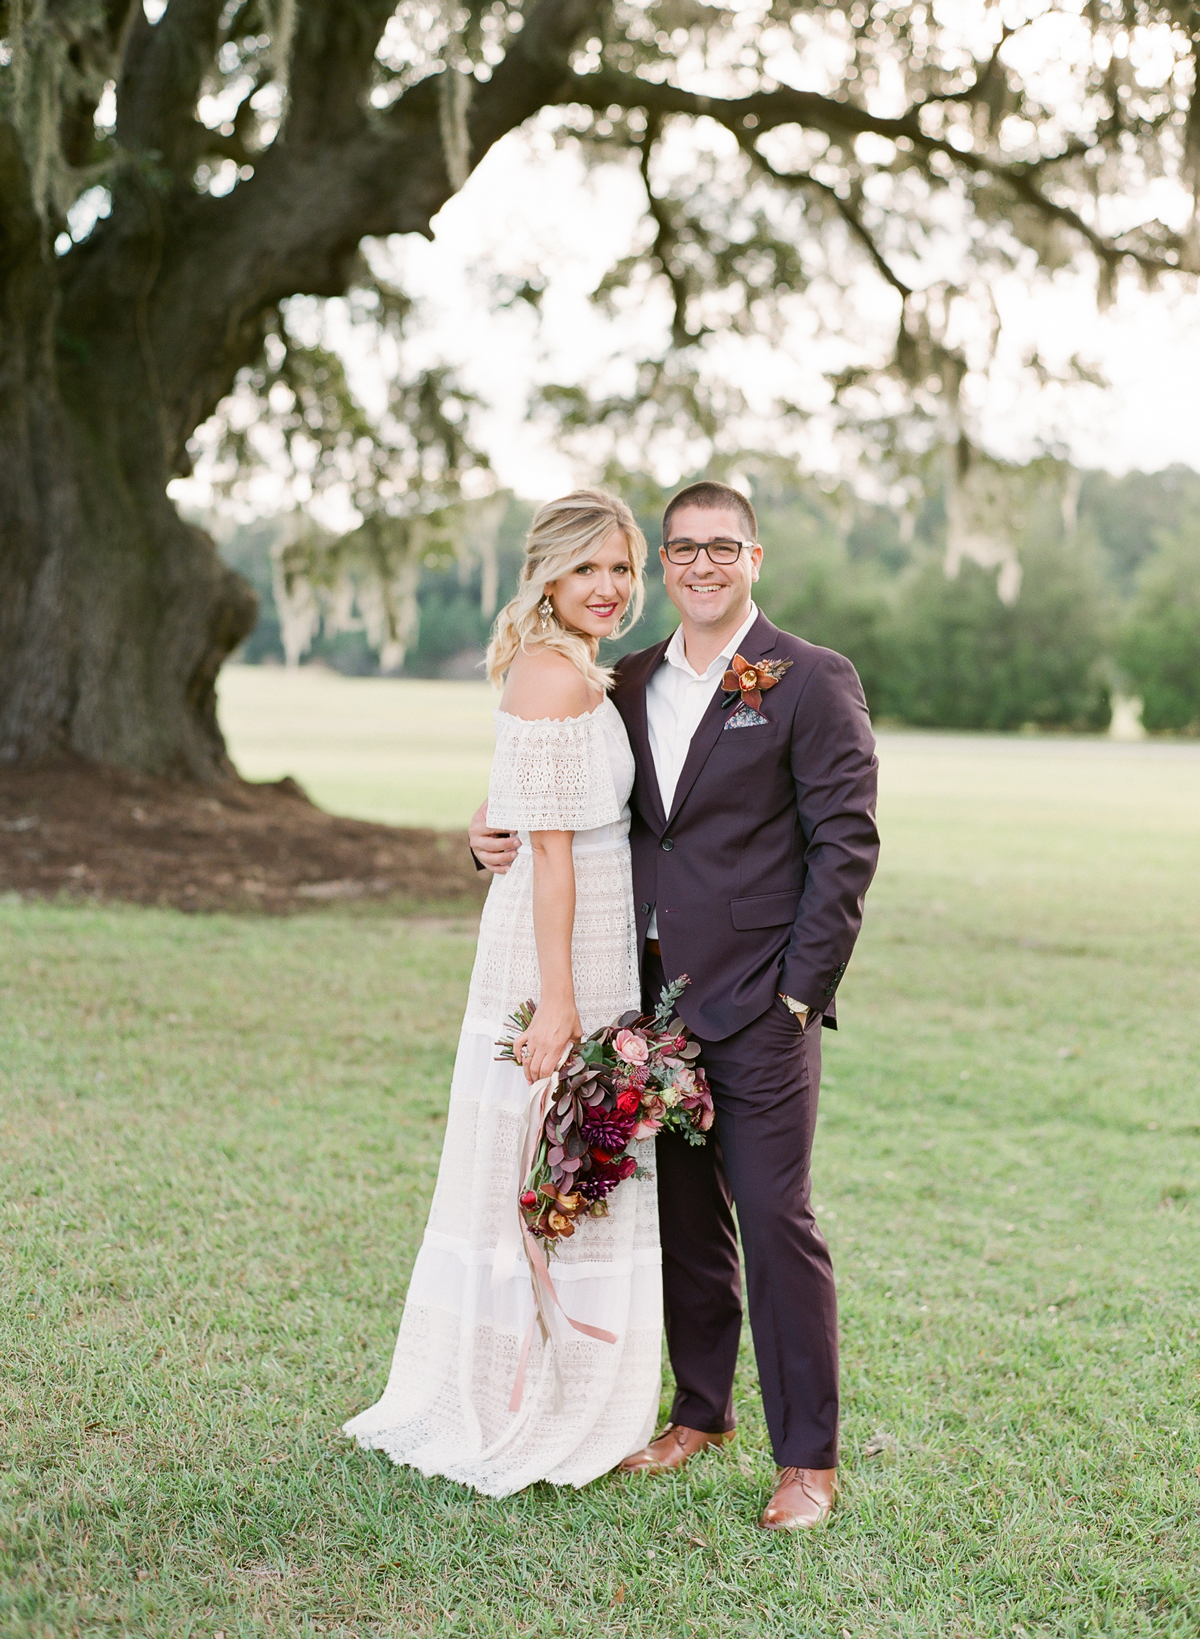 An Elegant, Intimate Vow Renewal Full of Southern Charm